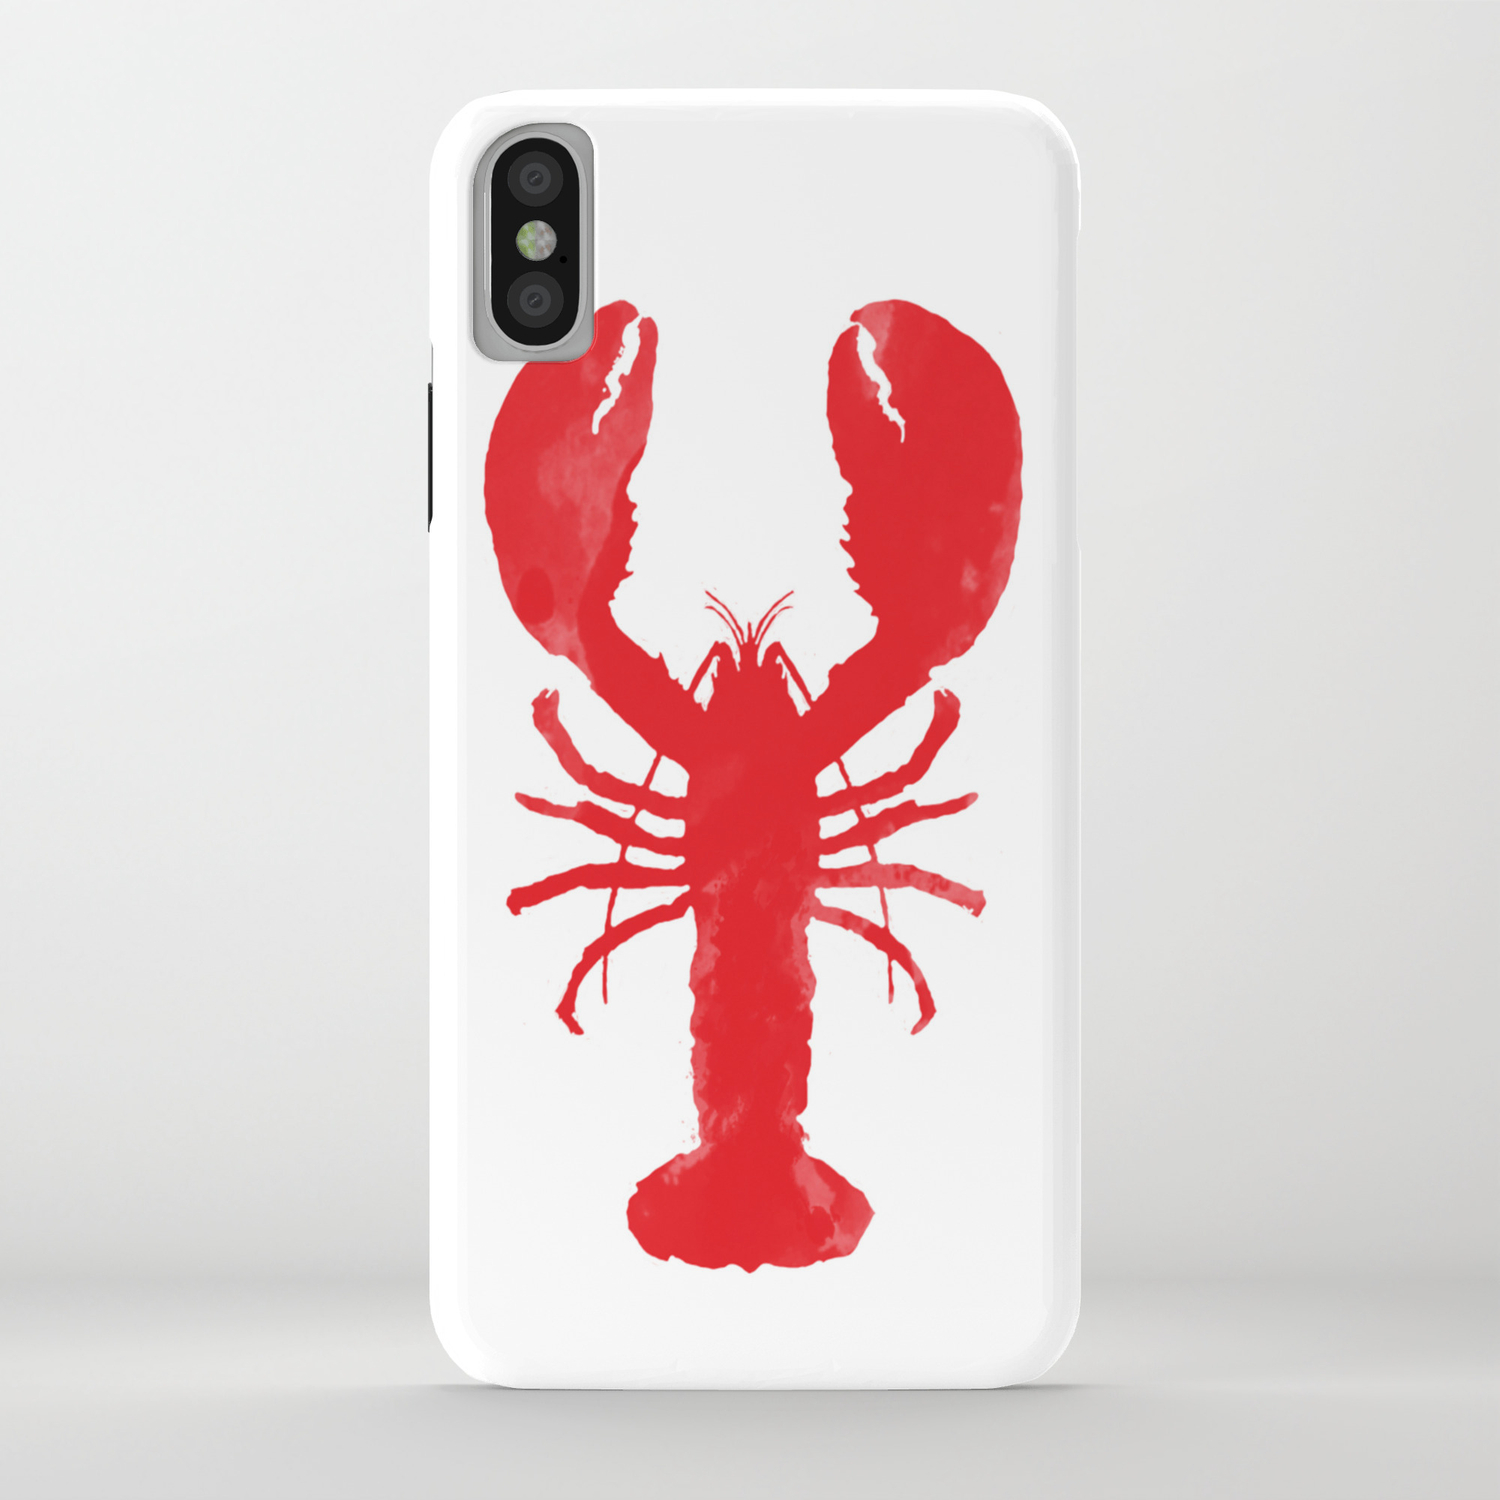 iphone xs case lobster